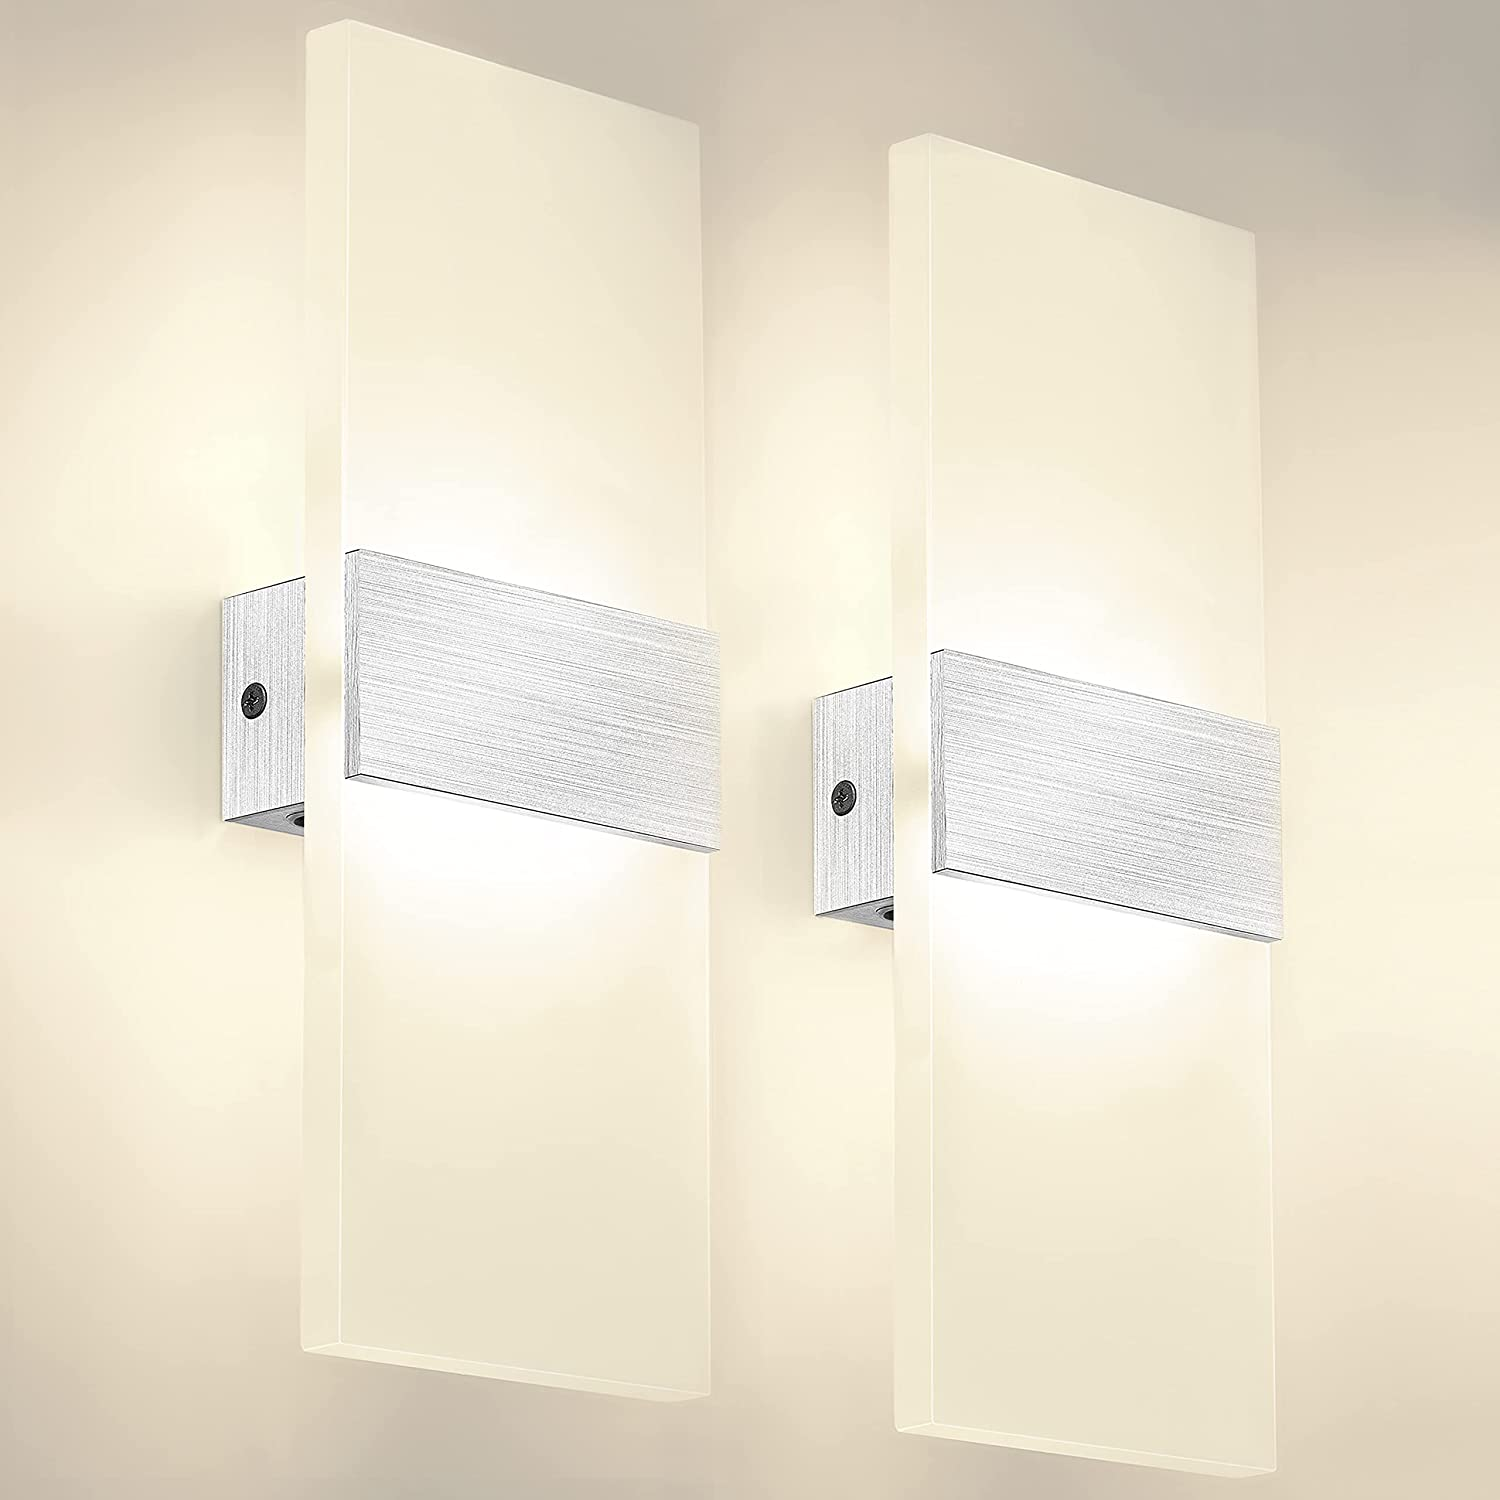 Modern Wall Sconces,12W LED Acrylic Wall Lamp,5.57ft Cord Plug in and On/Off Switch, Wall Mounted Wall Lights for Home Decor, Bedroom, Living Room, Hotel, Staircase,3000k Warm White, Set of 2